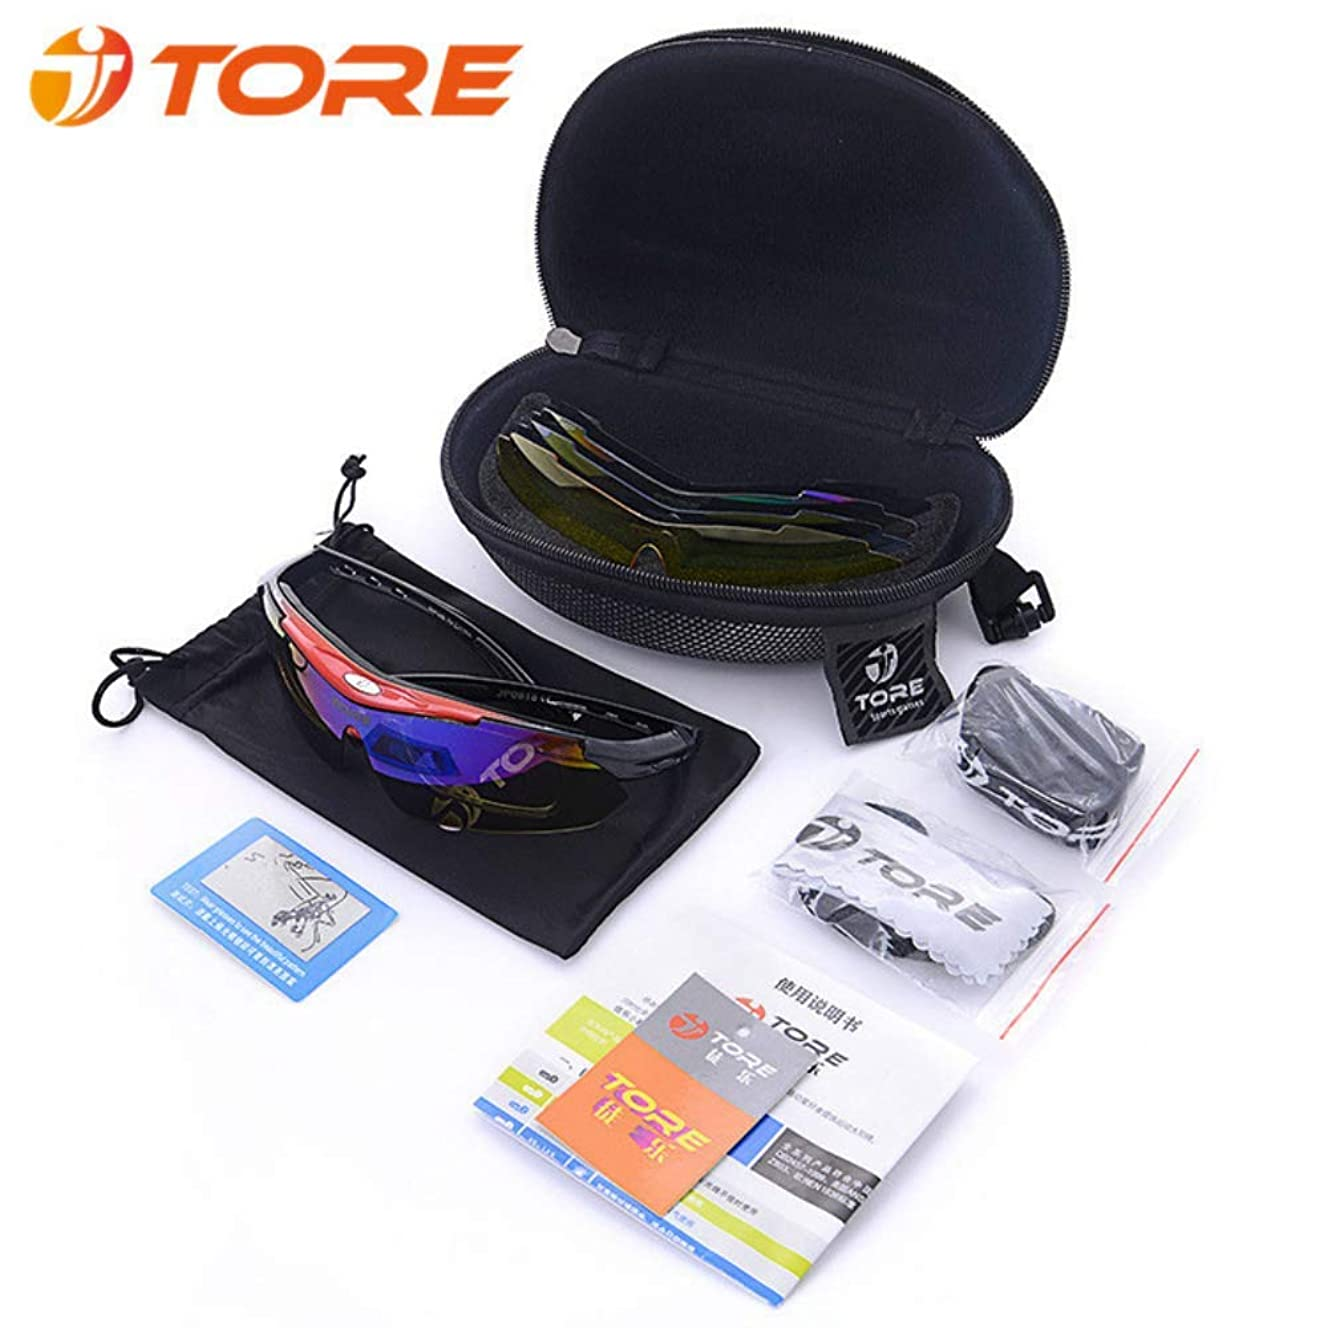 TORE Polarized Cycling Sunglasses with Interchangeable Lenses and Head Strap - Premium Sport Sunglasses for Men and Women - Cycling Glasses Ideal for Fishing, Ski Running, Golf and More